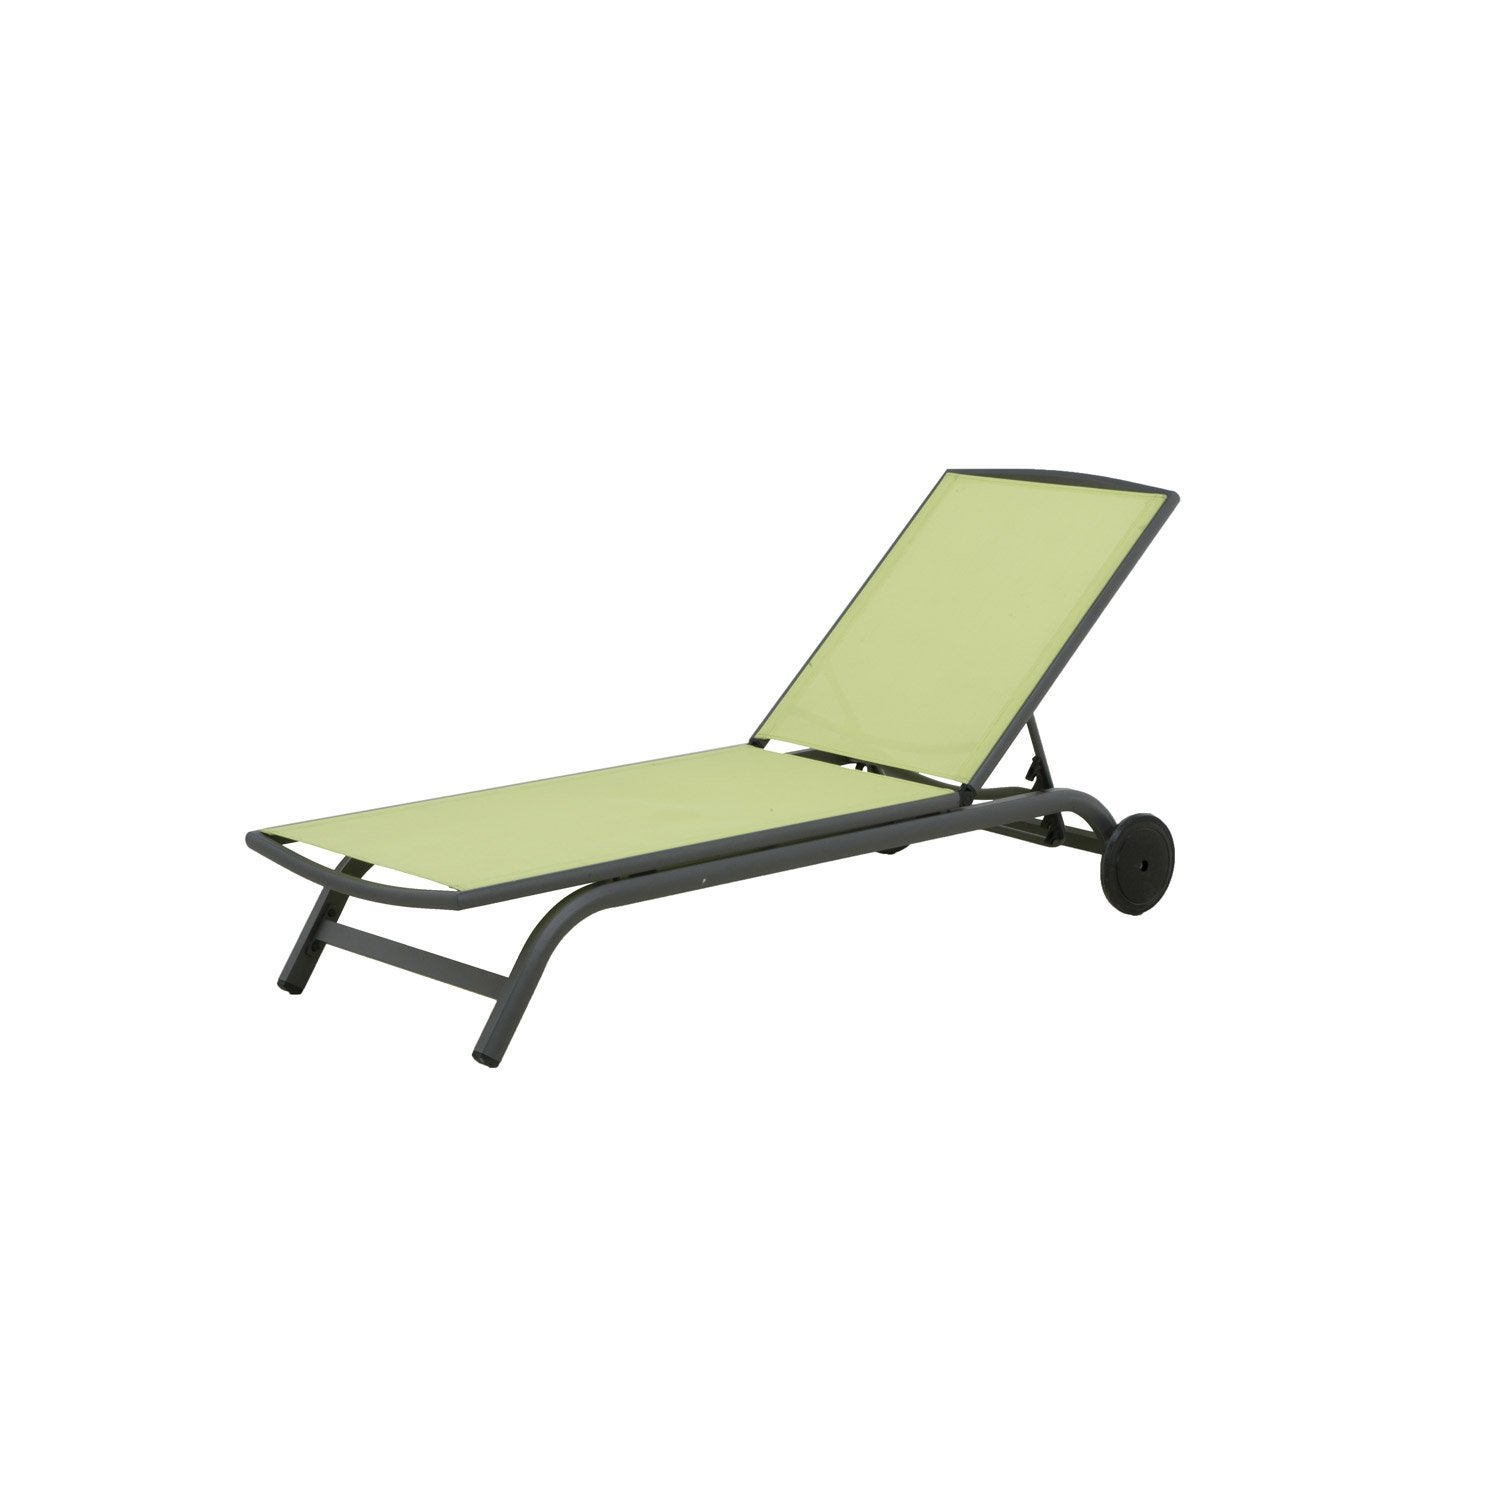 Transat jardin carrefour for Chaise longue carrefour